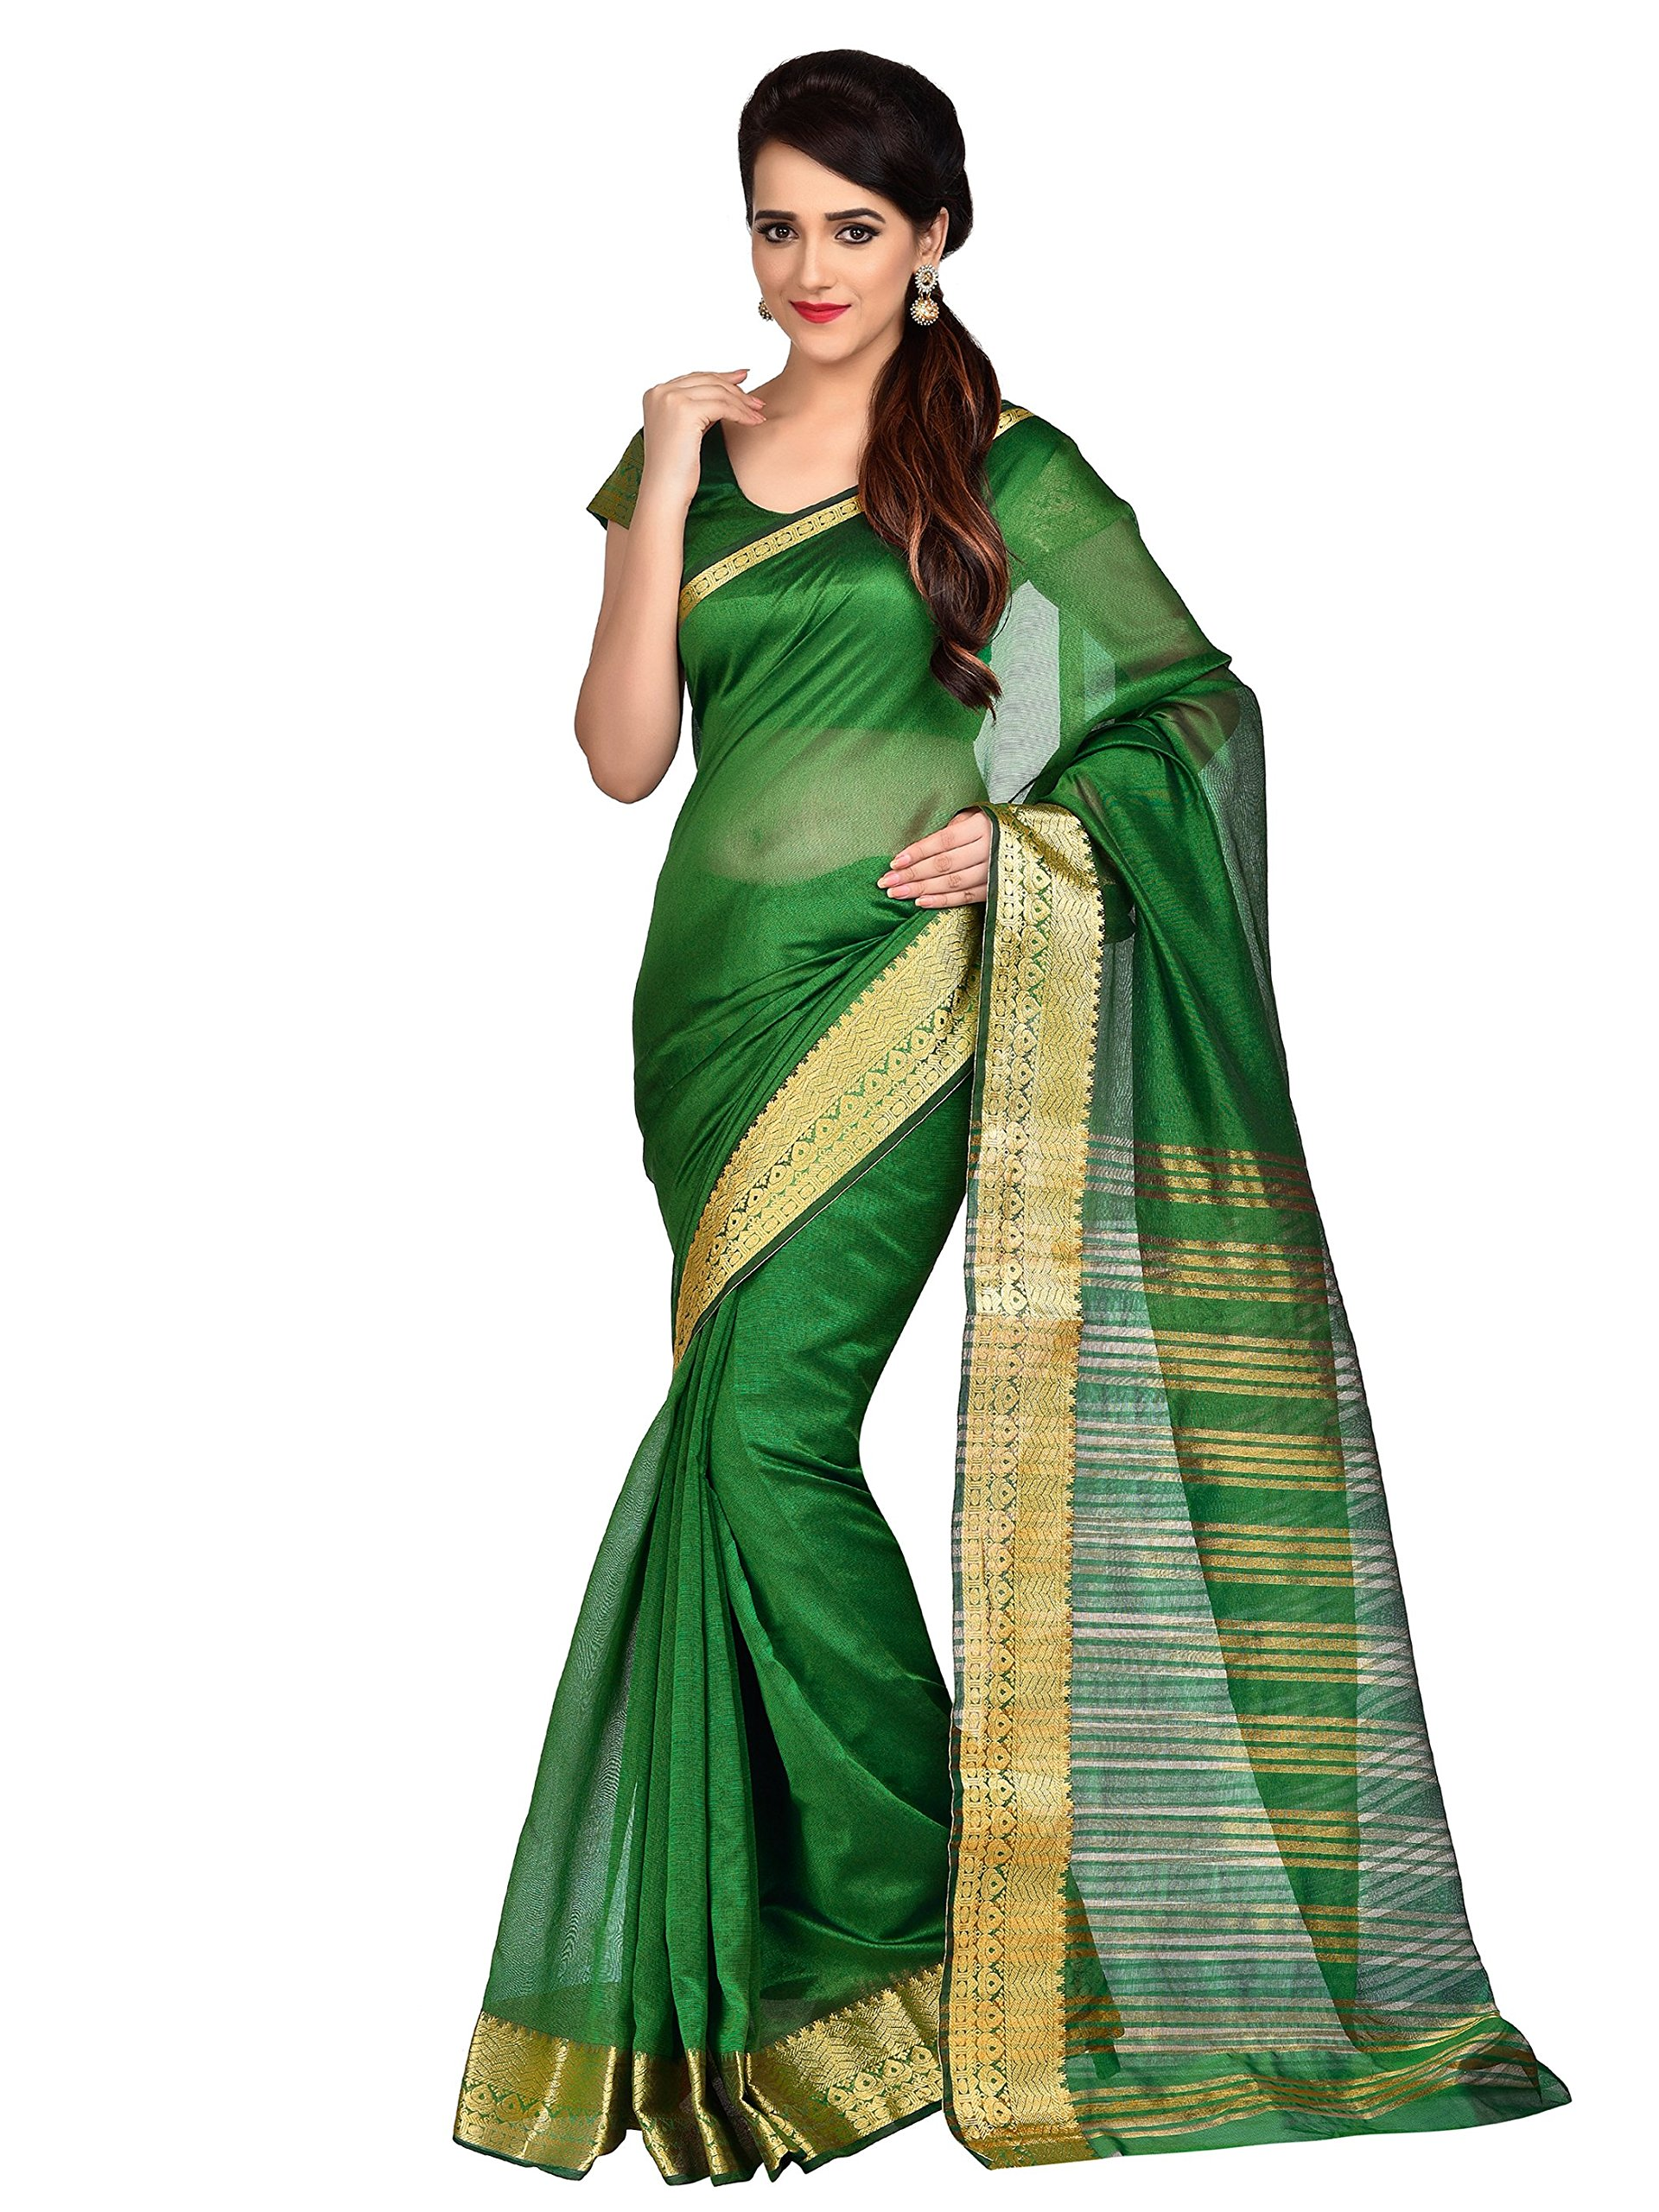 b94567ca4b799 Get Quotations · Shonaya Women s Woven Work Banarasi Art SIlk Green  Designer Saree With Unstitched Blouse Piece